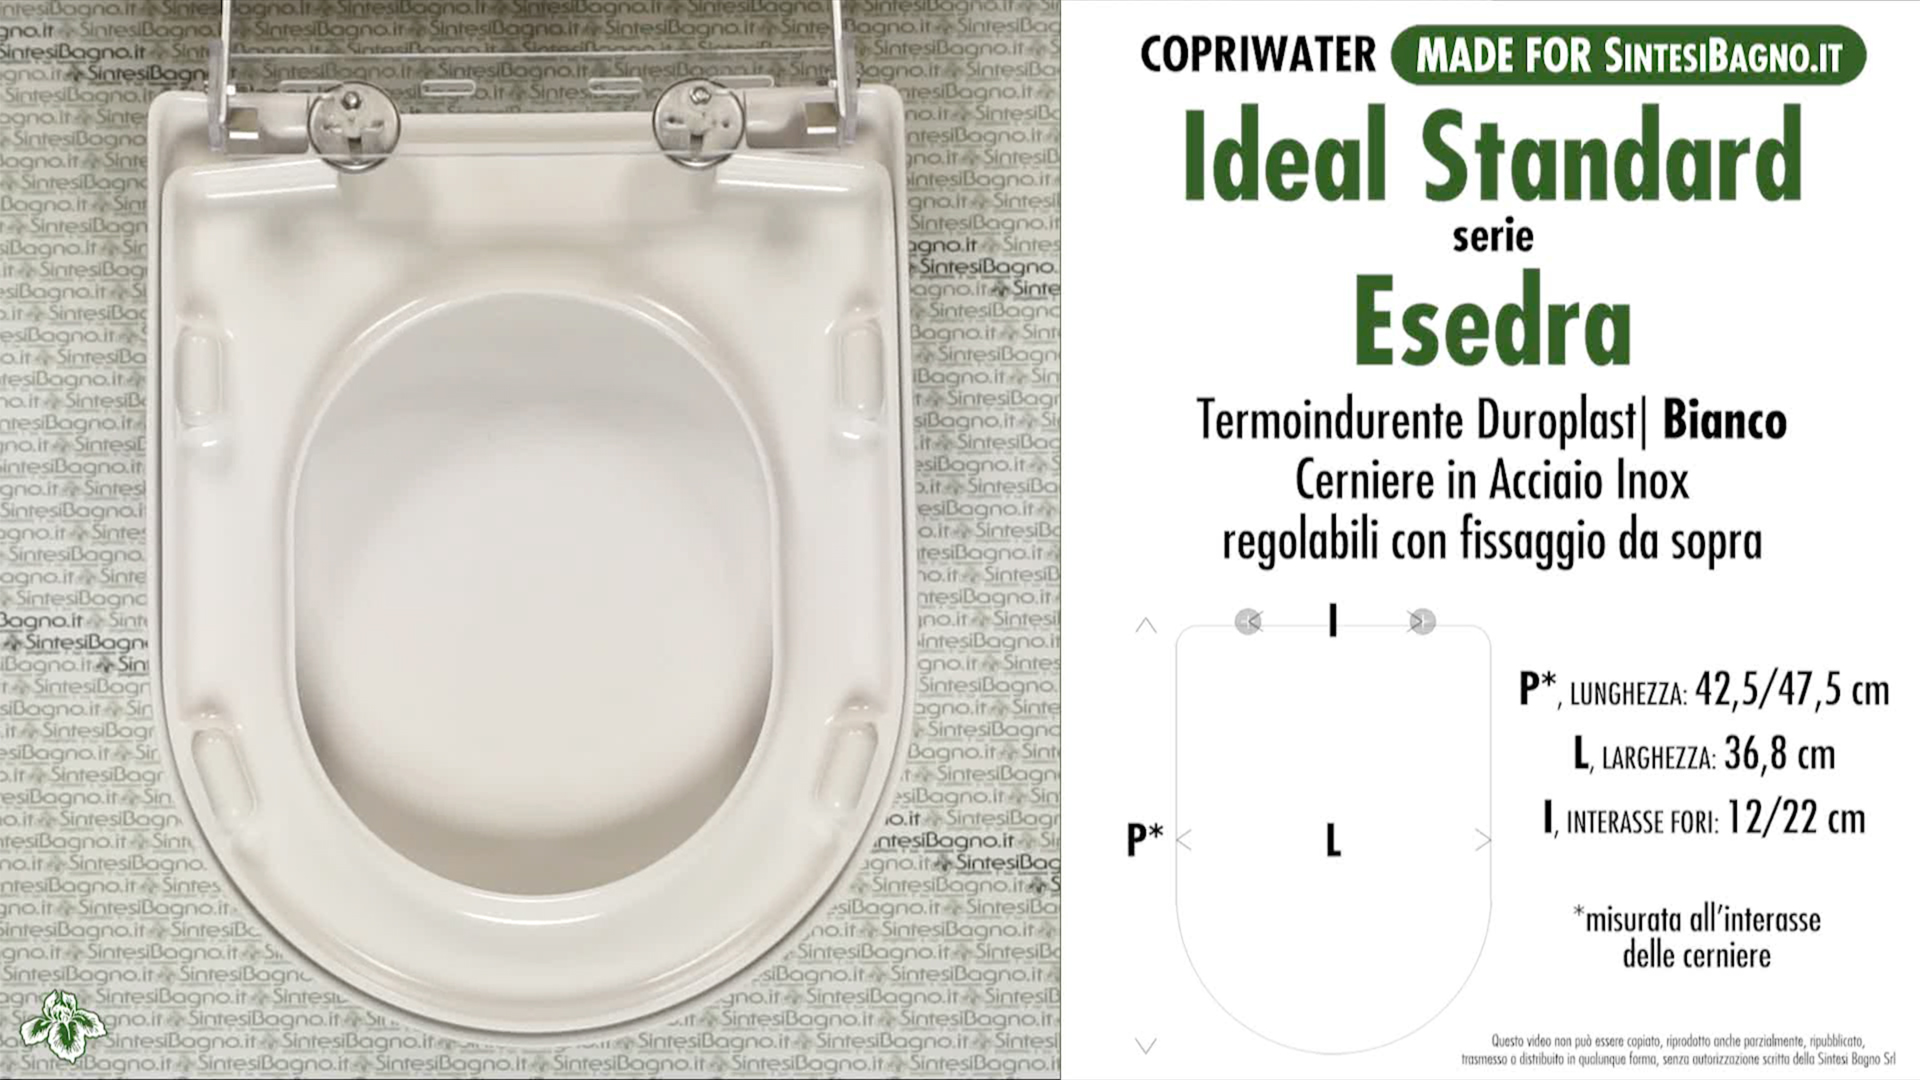 Schede tecniche misure copriwater ideal standard serie esedra for Serie esedra ideal standard